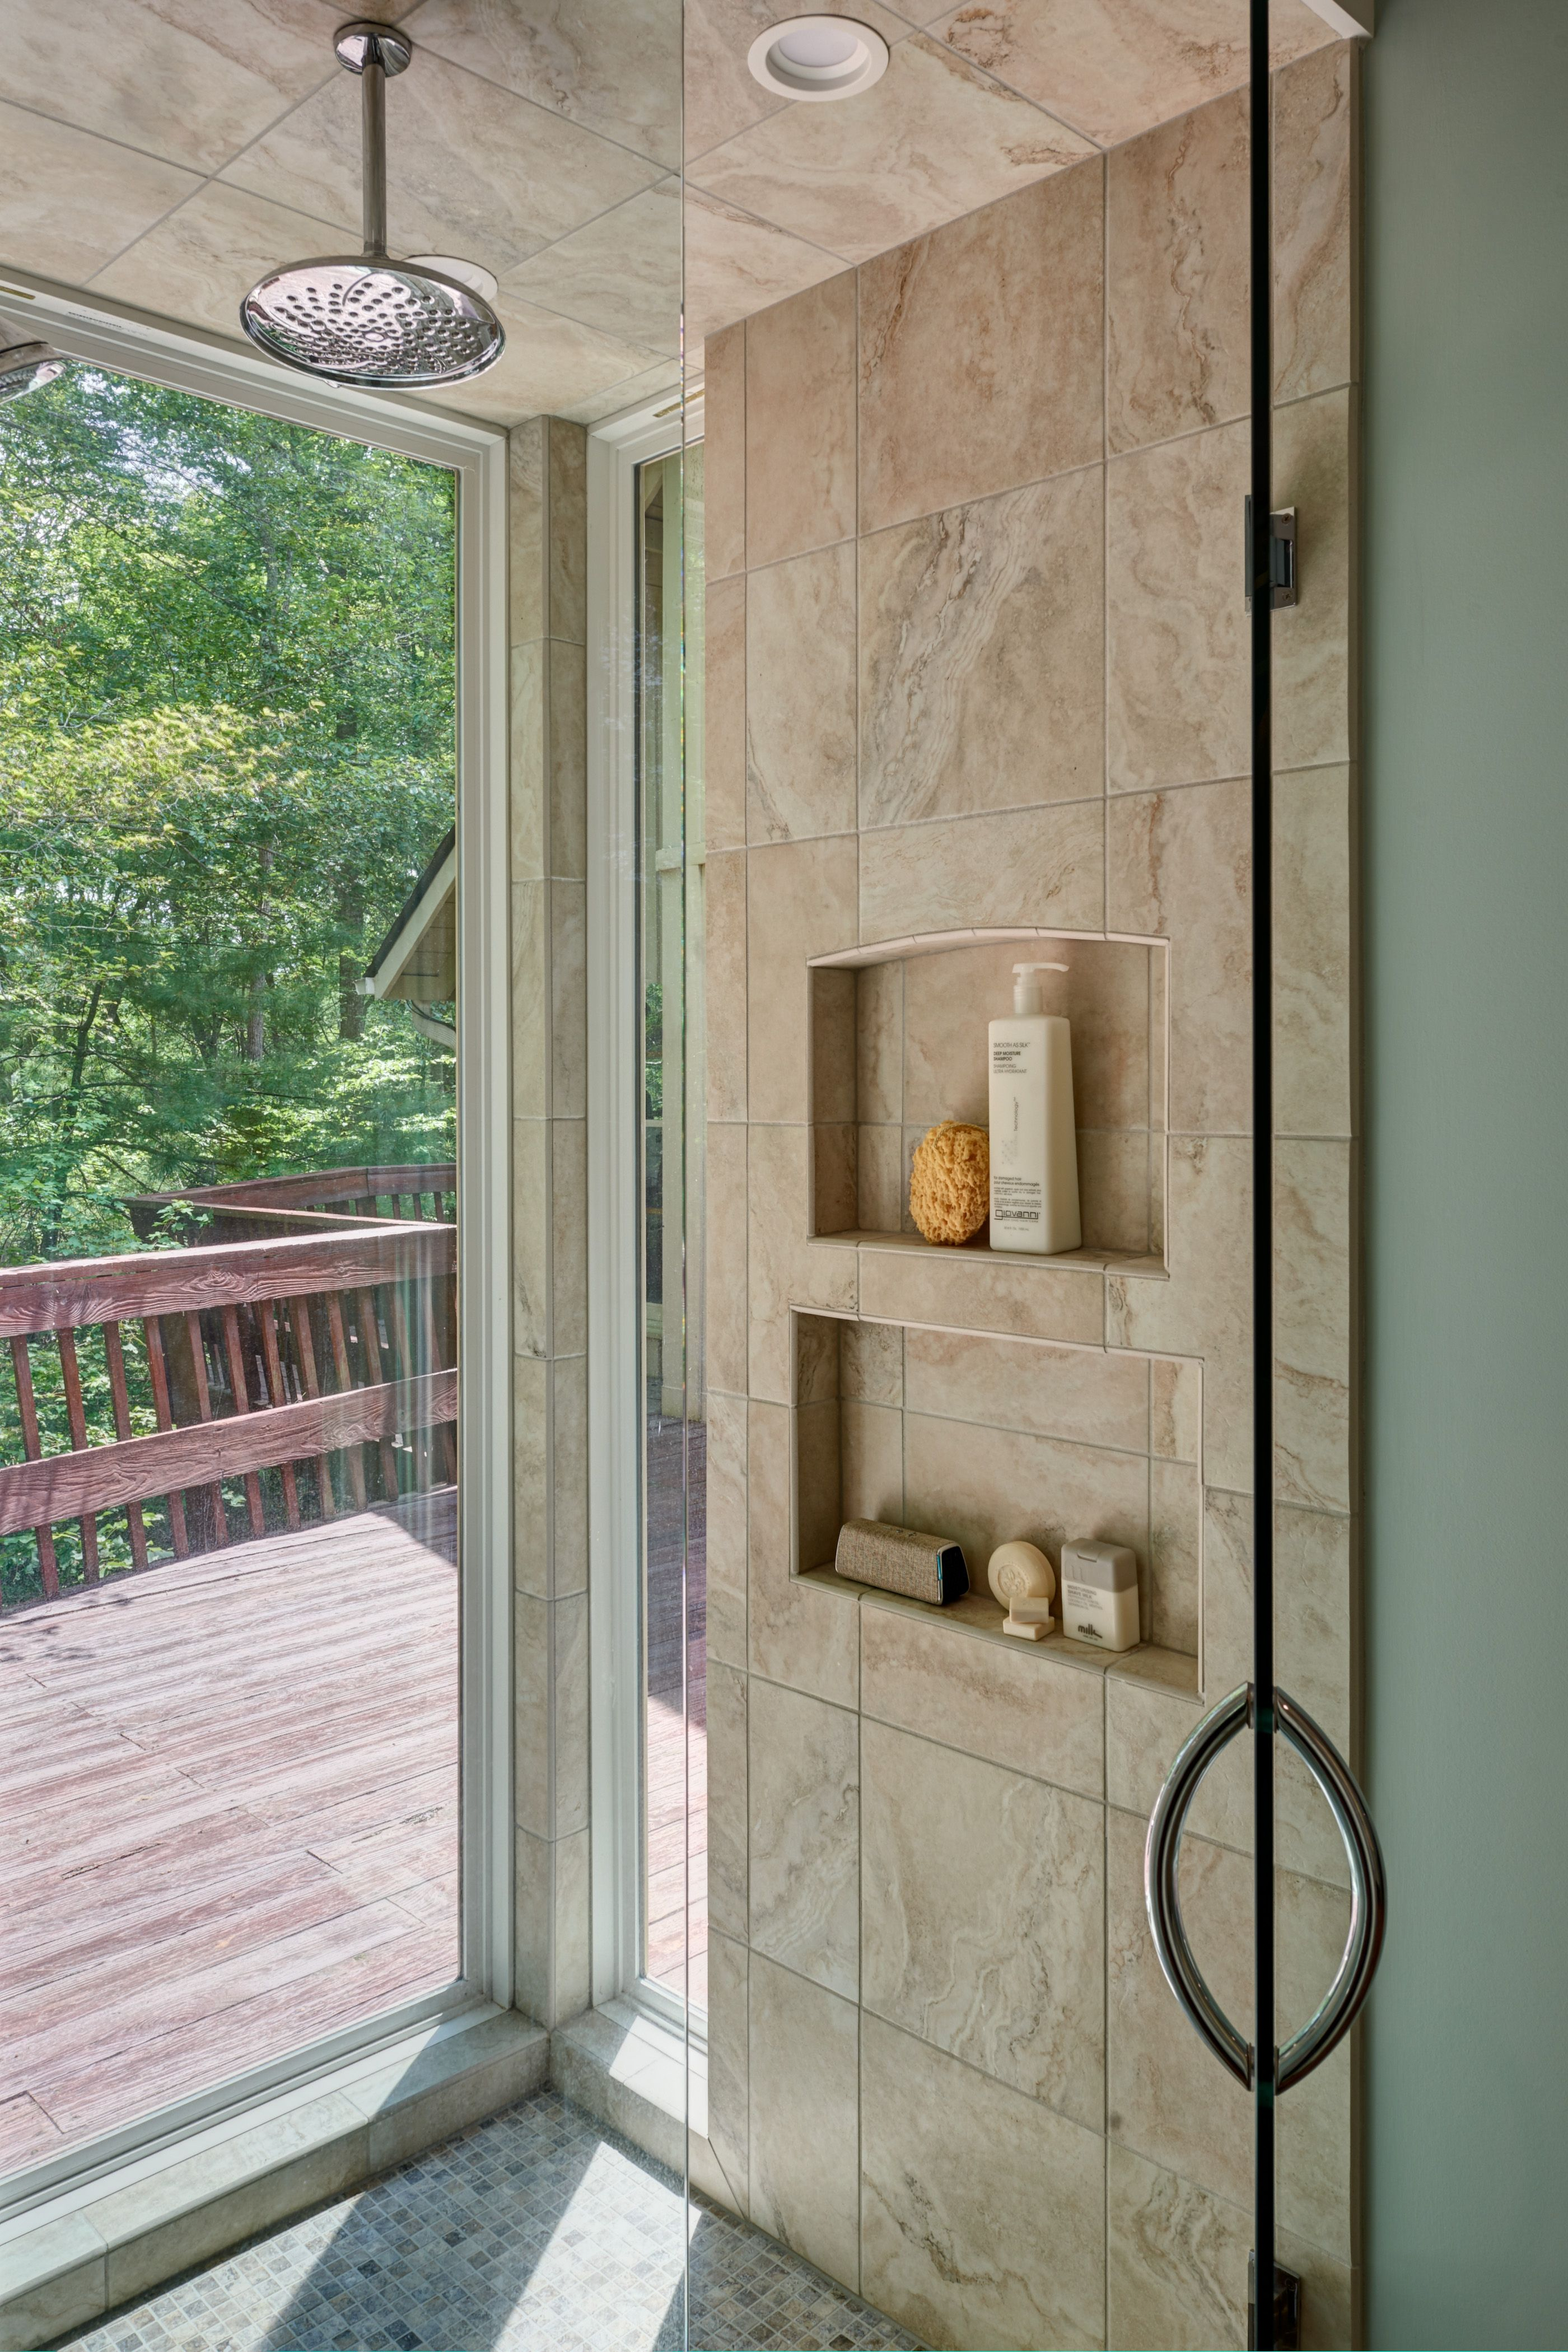 Shower With Exterior Glass Wall Brought Nature Into The Shower